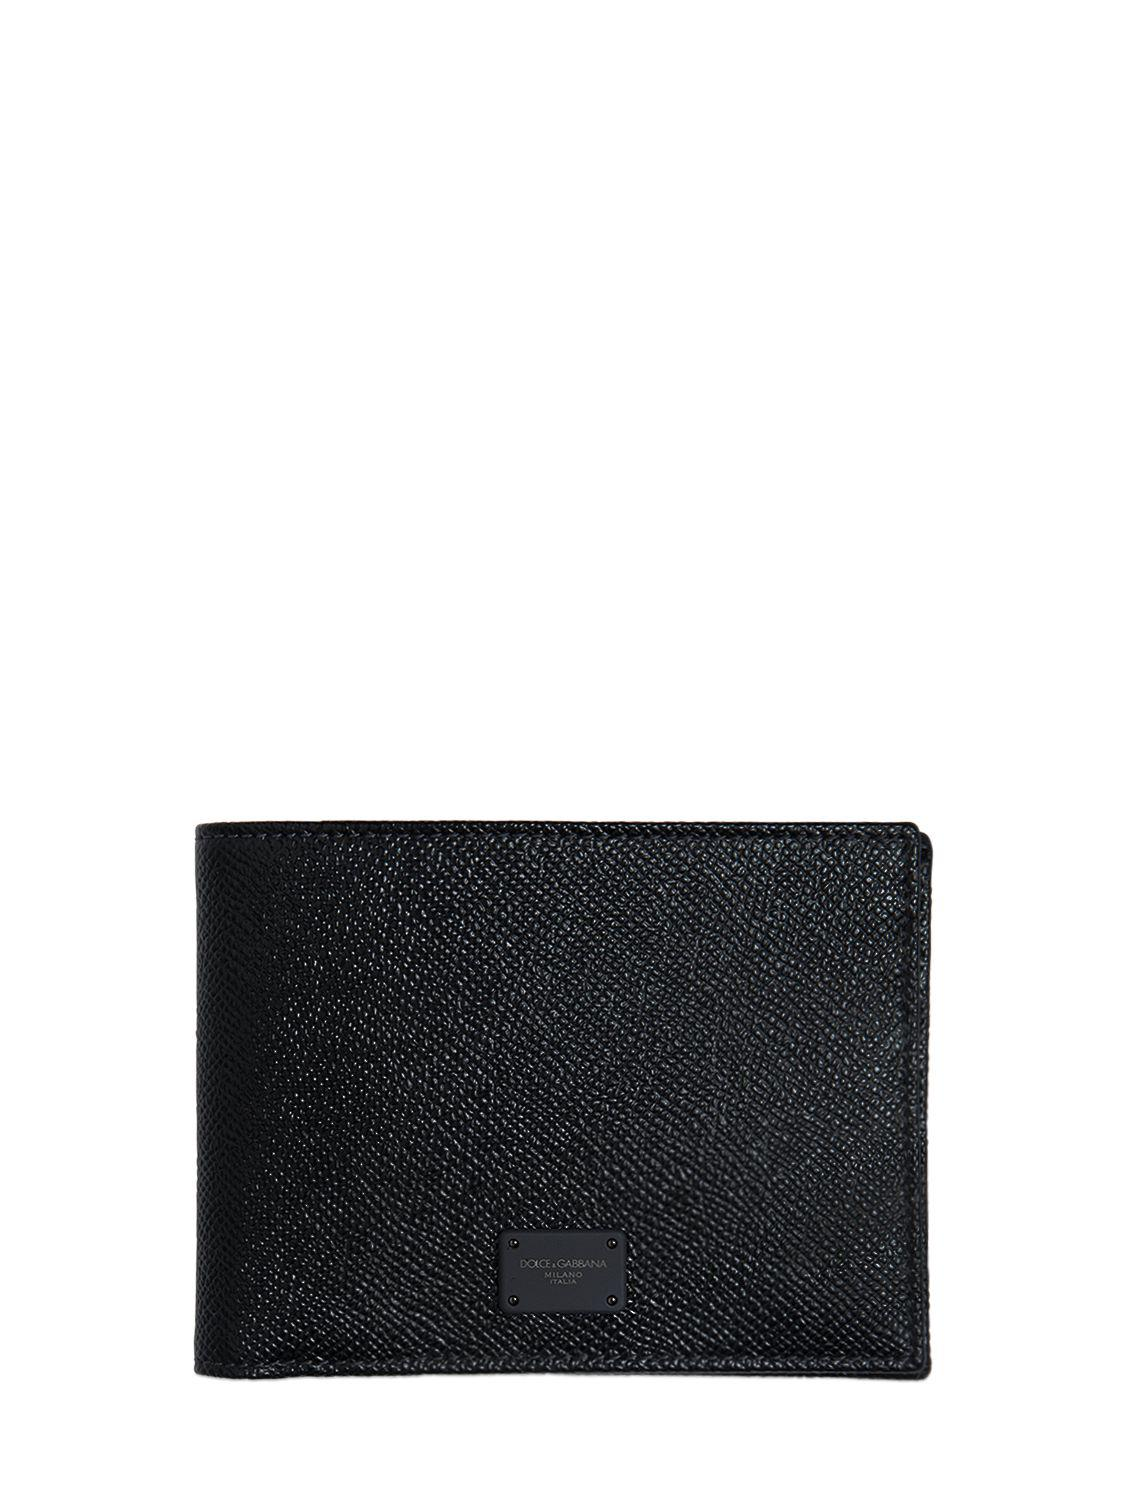 Black Dauphine leather wallet Dolce & Gabbana ewqlwMAGN